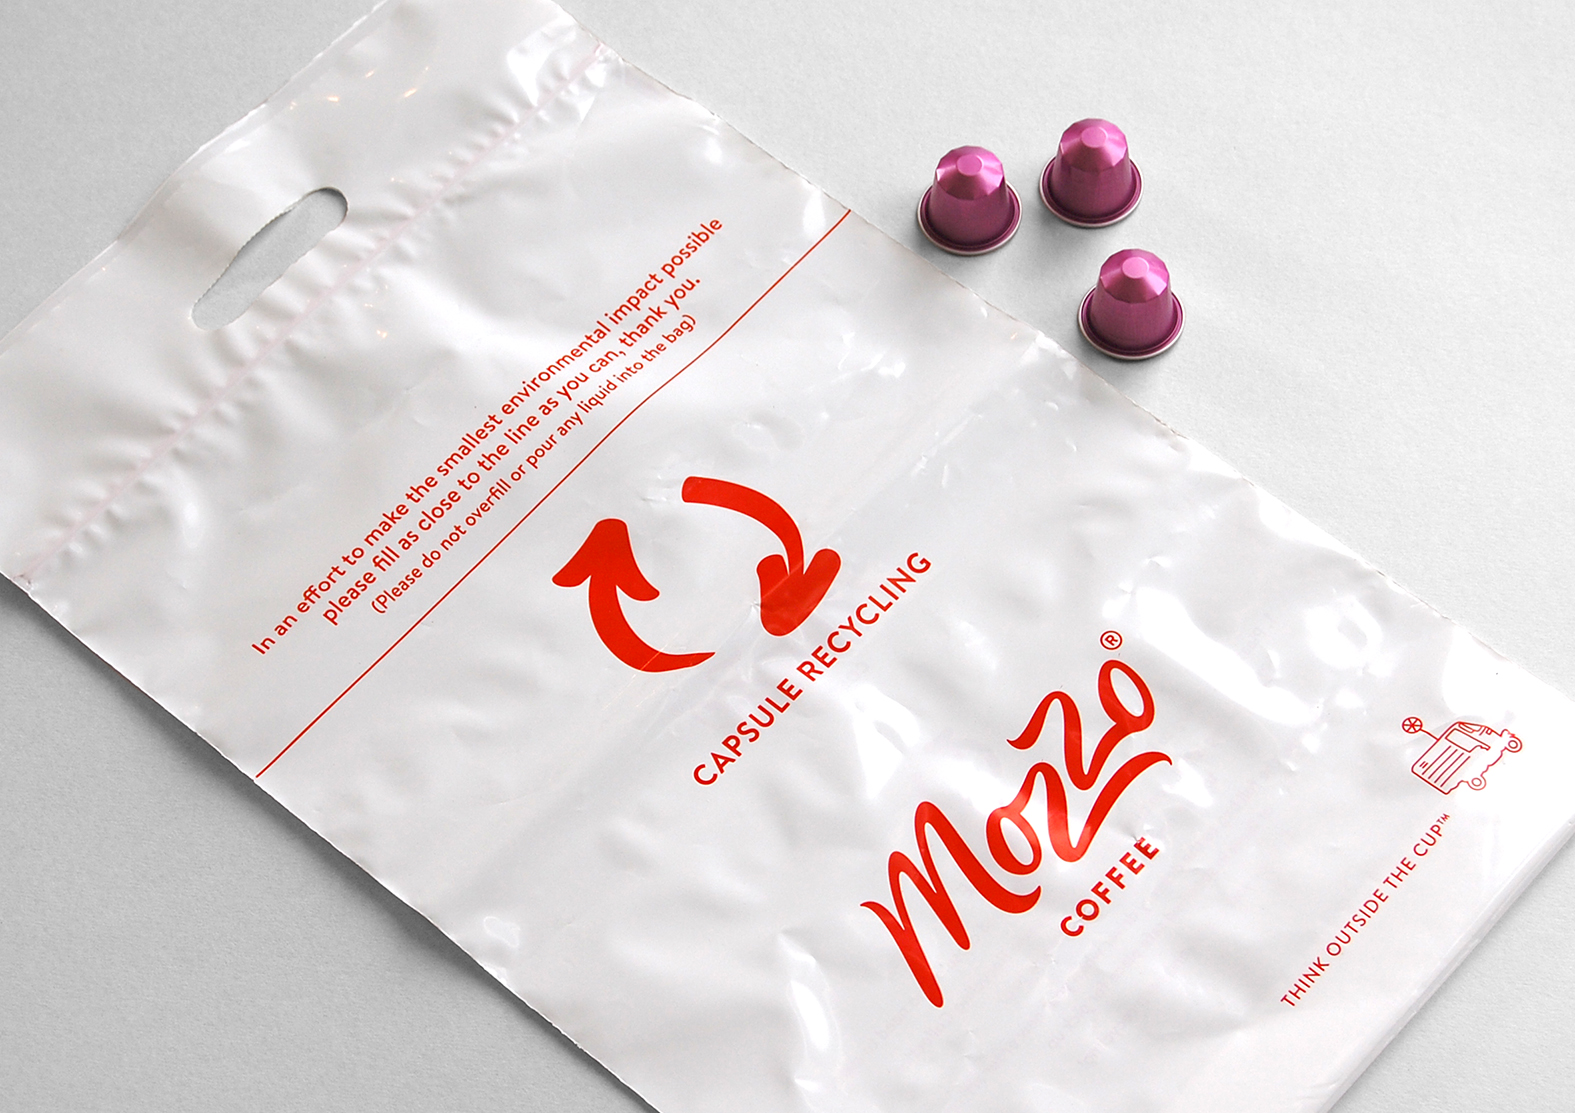 Mozzo_Coffee_Strong_and_Together_Capsule_Design_15.jpg